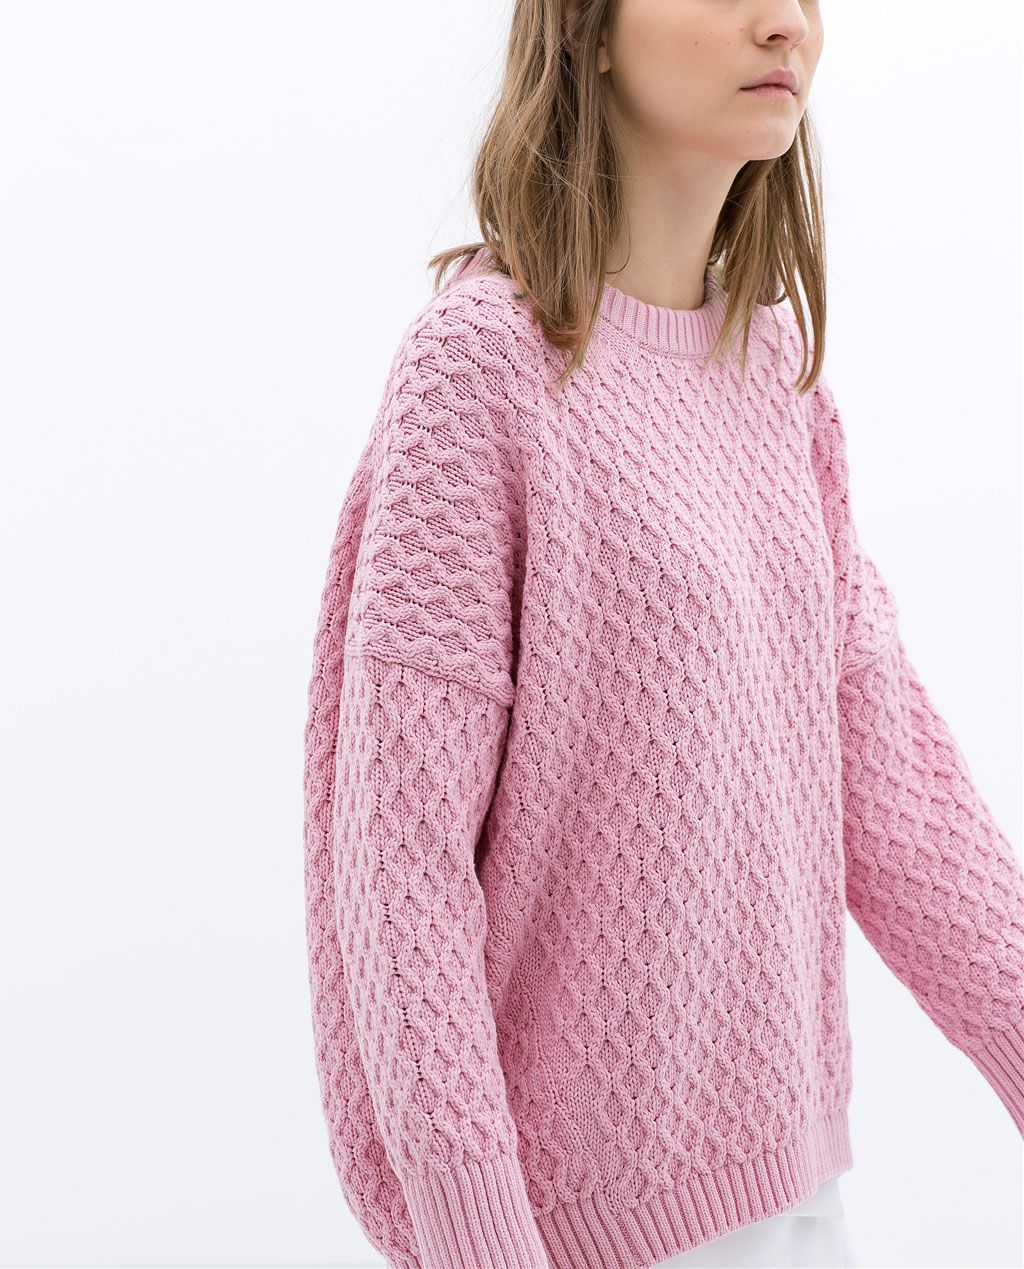 pink oversized sweater | style | Pinterest | Cable, Cable knitting ...